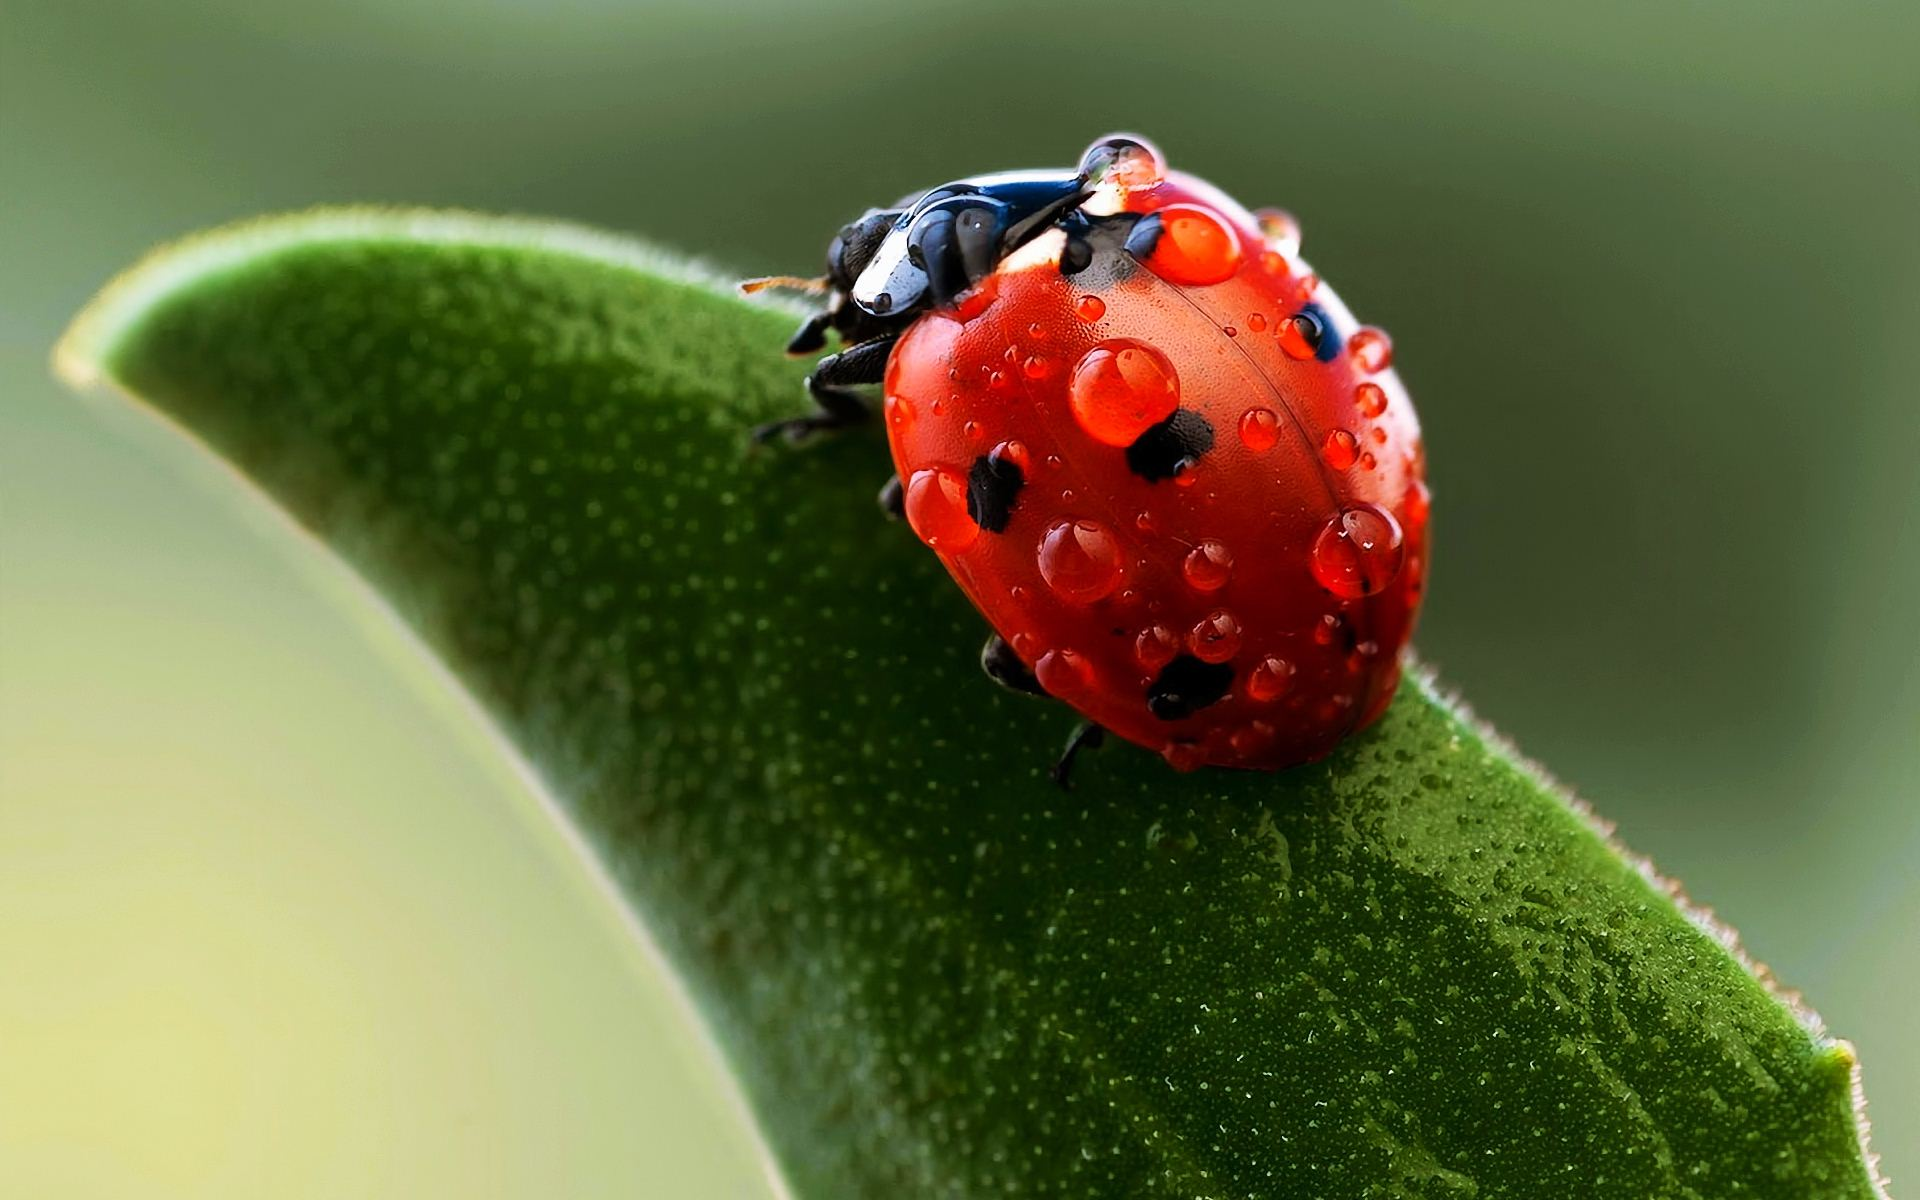 Ladybug-High-Quality-Wallpaper-Desktop